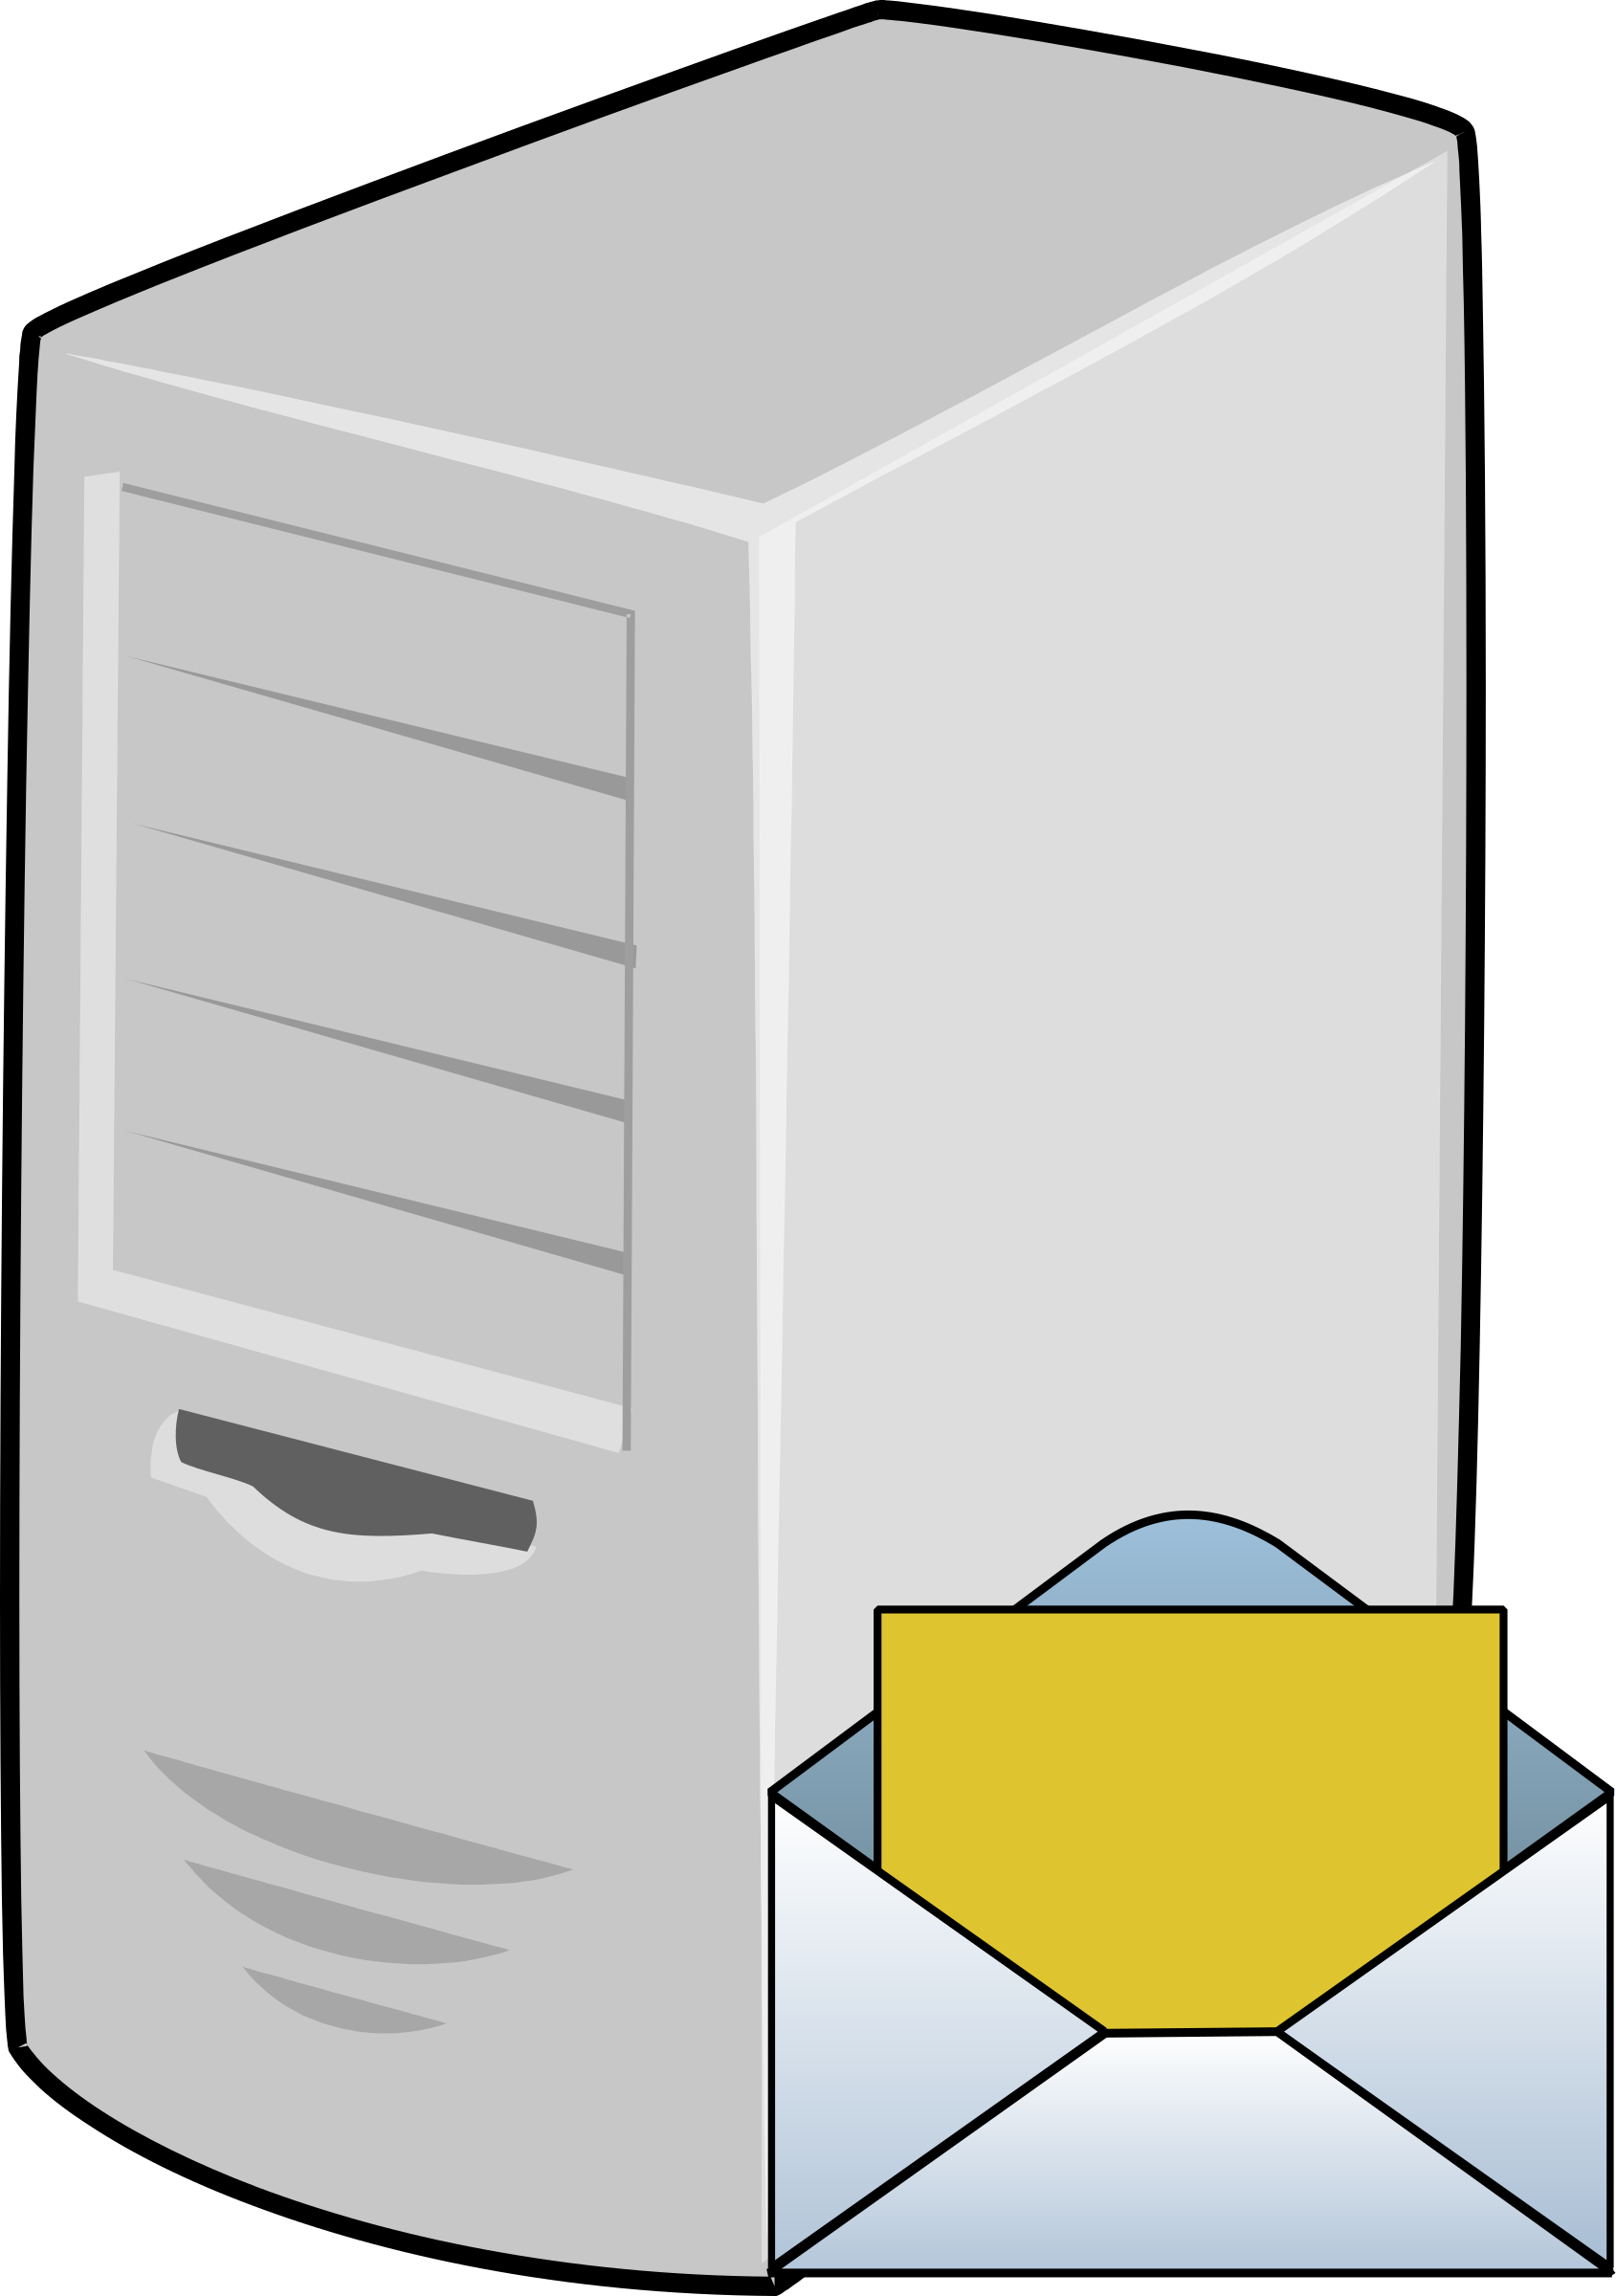 Clipart email server email server ccuart Images